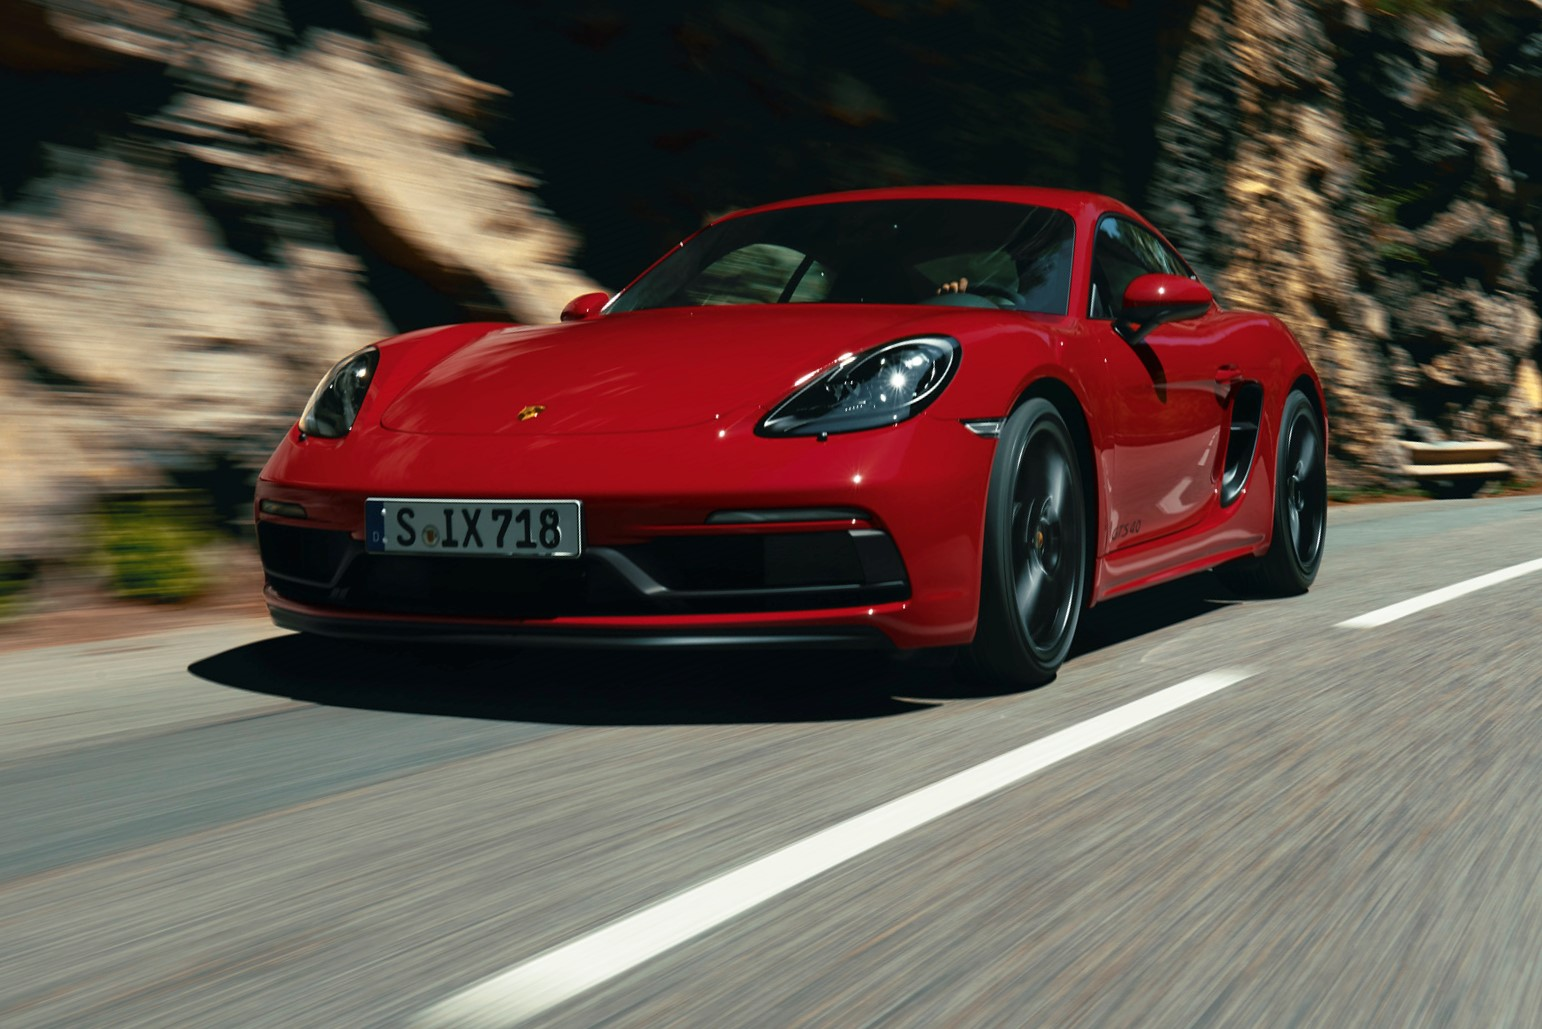 Porsche 718 Boxster and Cayman GTS Ditch Four-Cylinder Engine